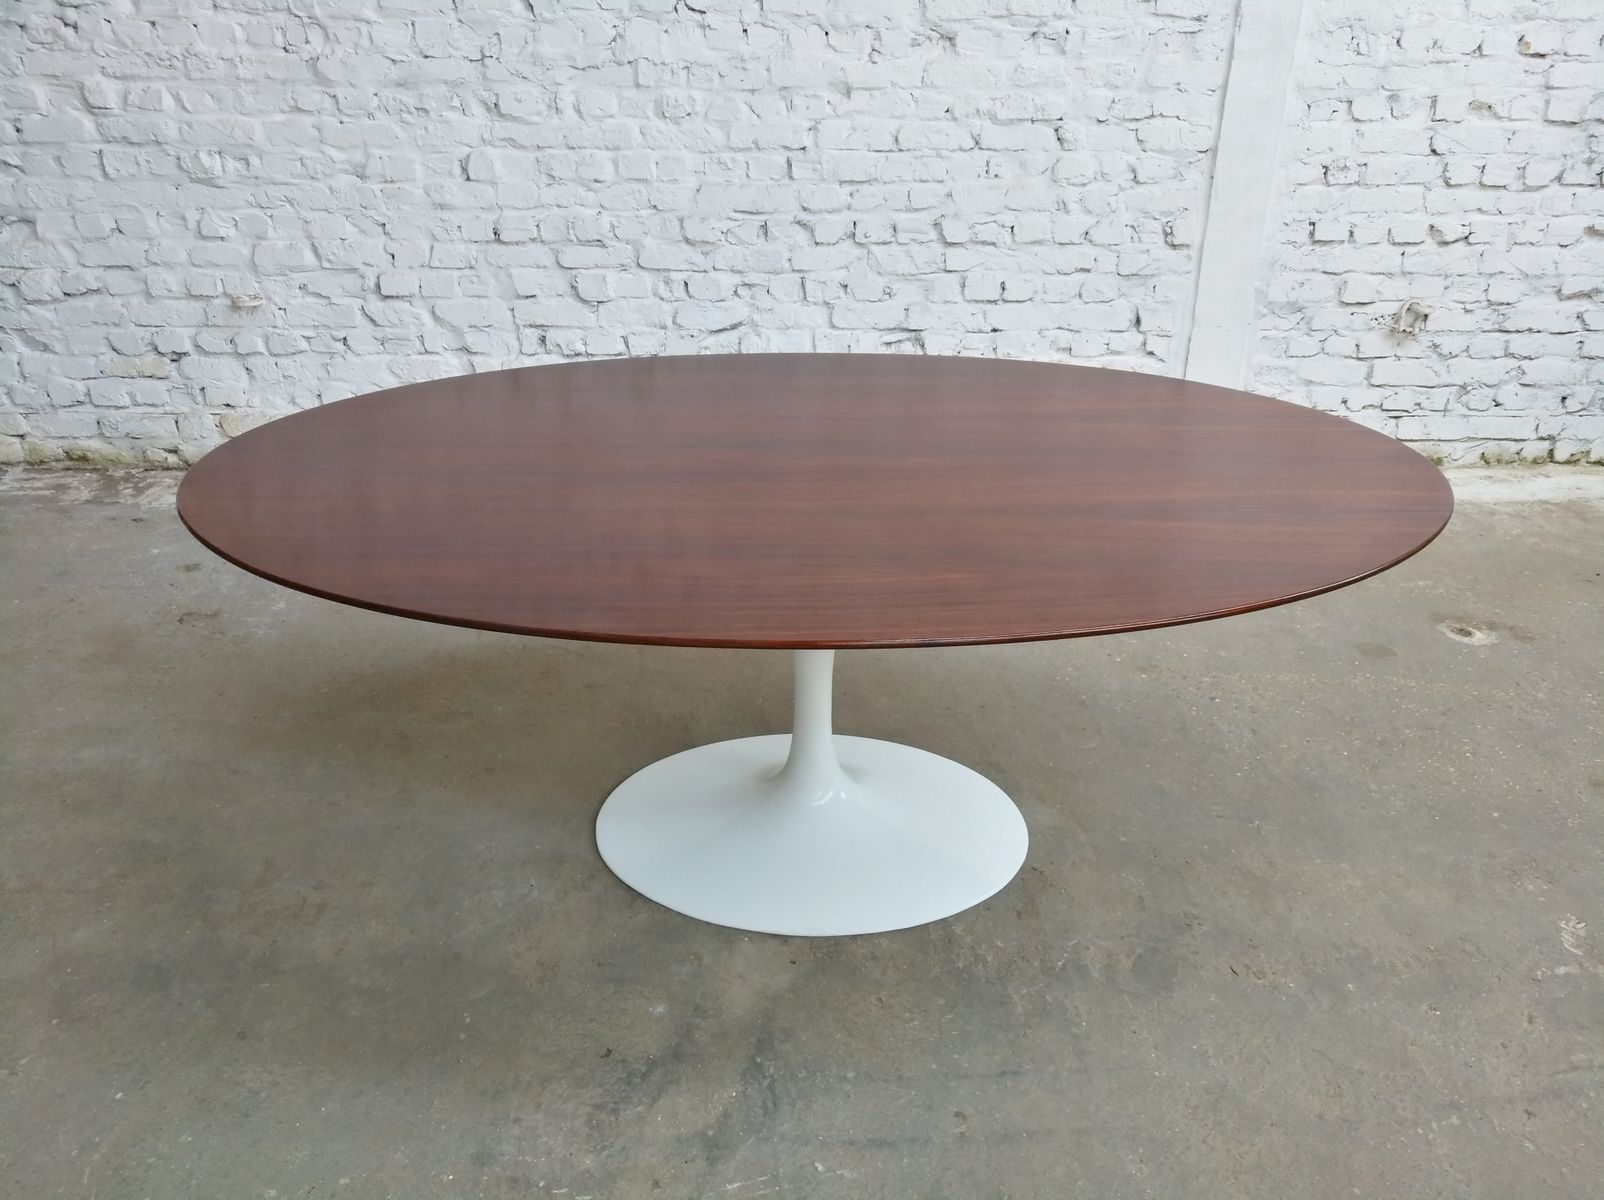 oval rosewood dining table by eero saarinen for knoll international 1960s for sale at pamono. Black Bedroom Furniture Sets. Home Design Ideas